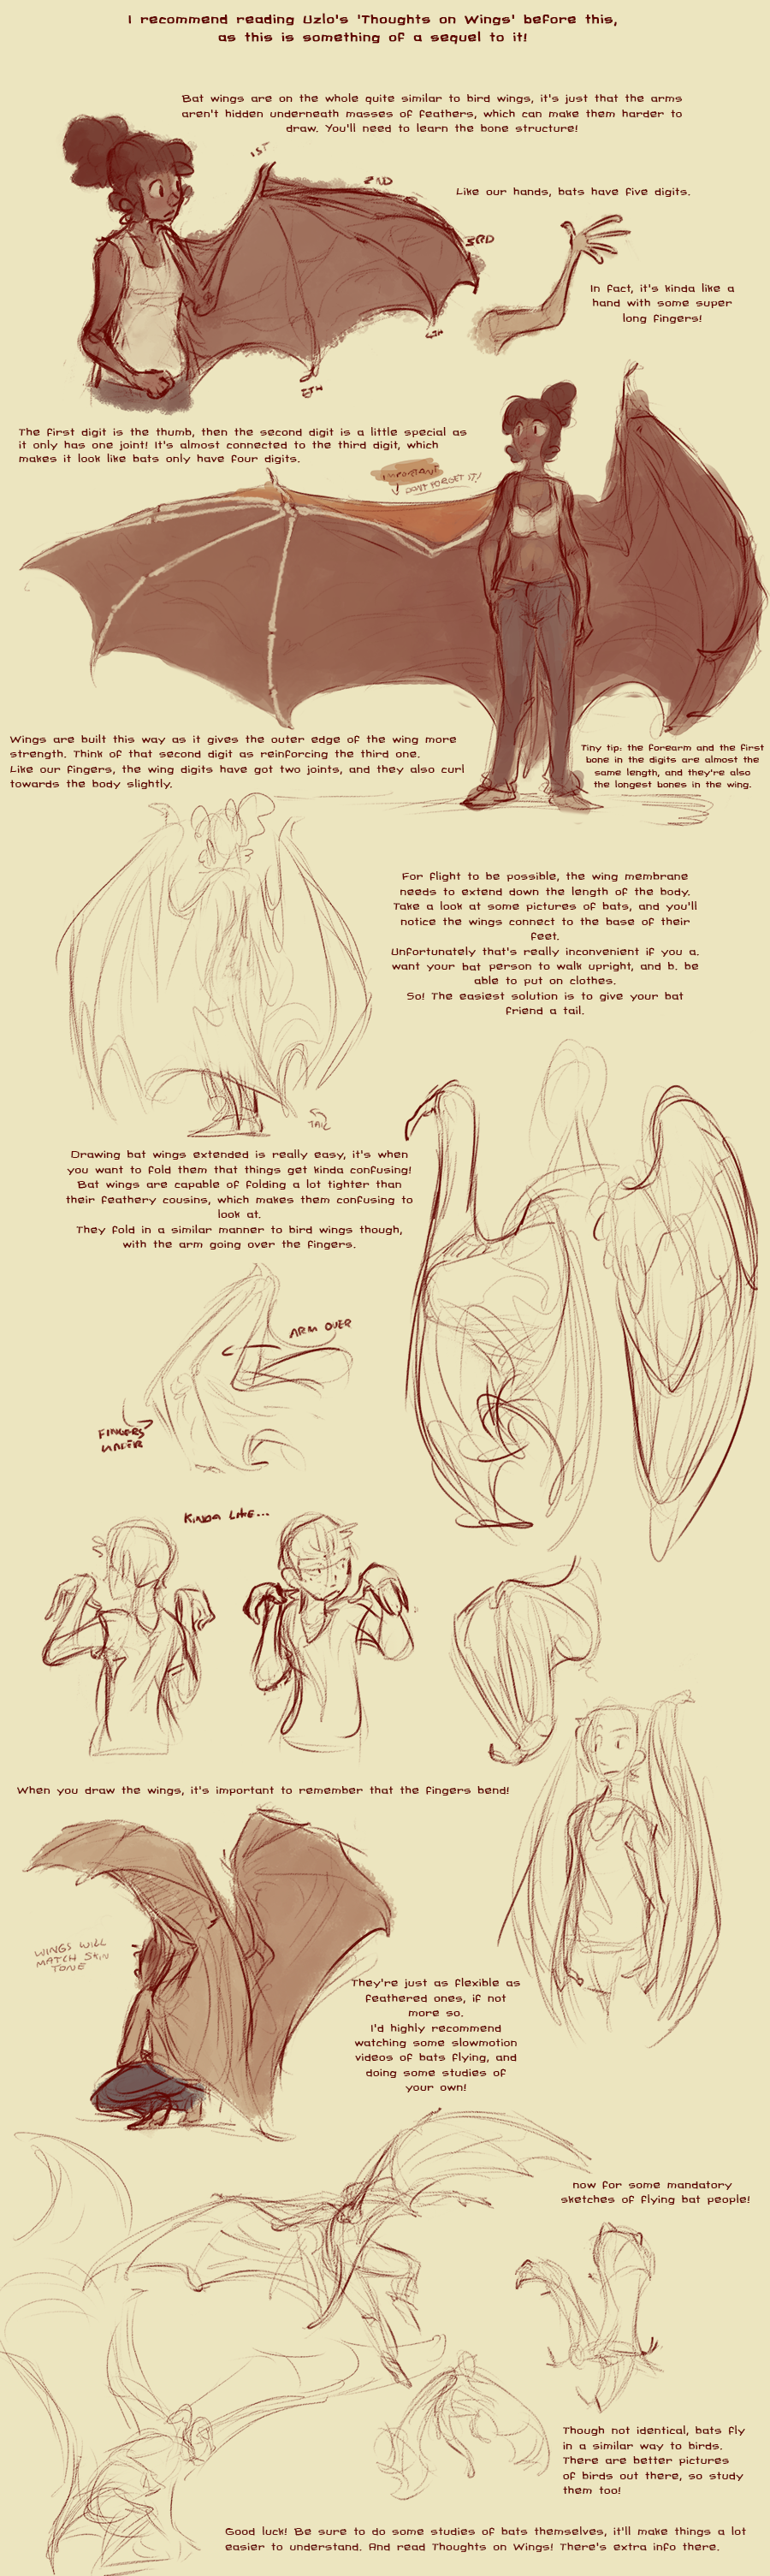 Character Design Tutorials : Bat wing tutorial by harrie on deviantart ★ character